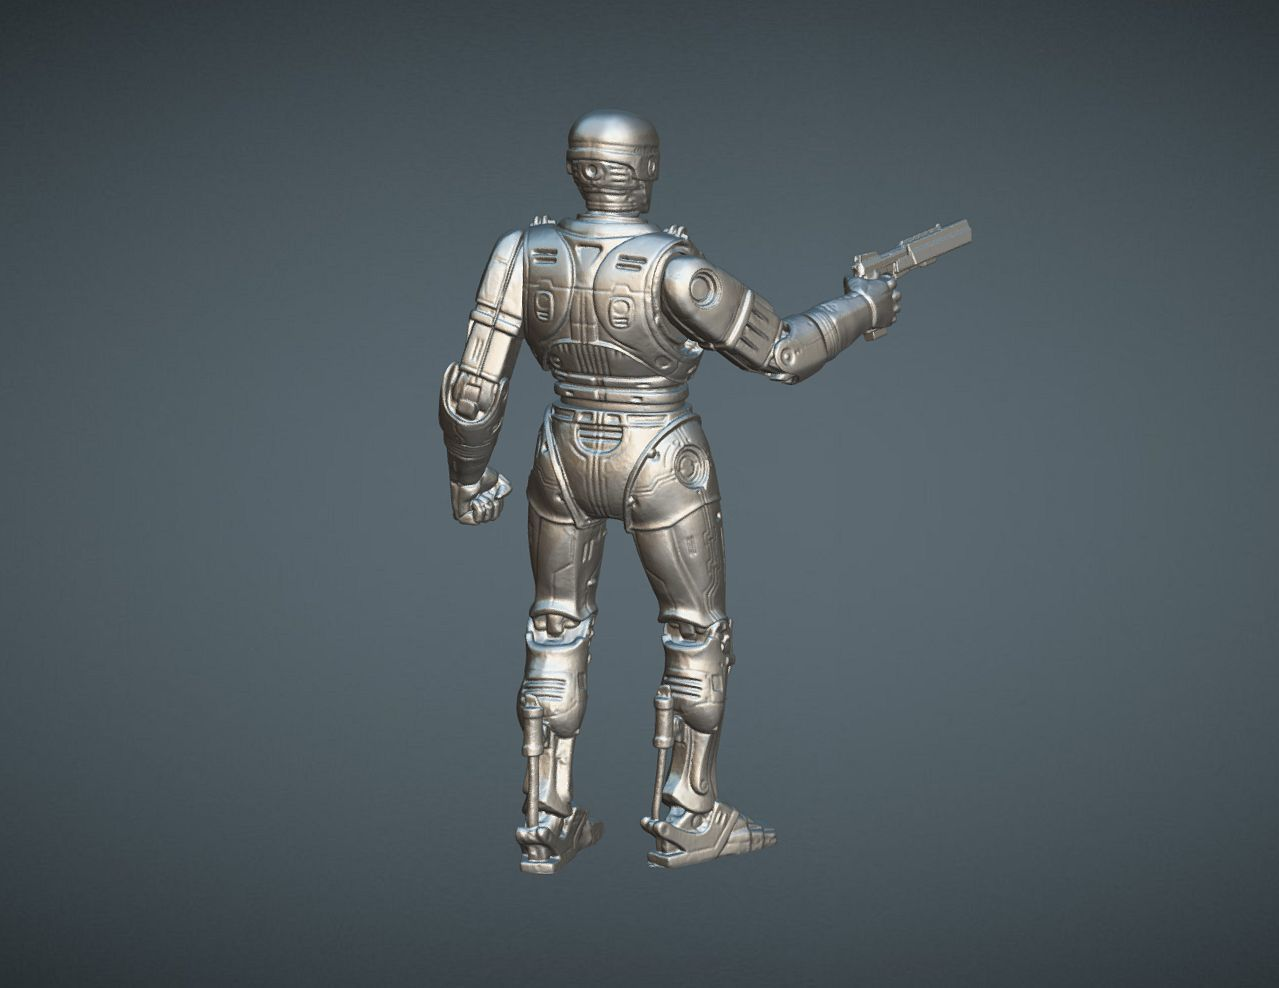 CAPTURE_006.jpg Download STL file ROBOCOP INSPIRITED FIGURE • Design to 3D print, Masterclip